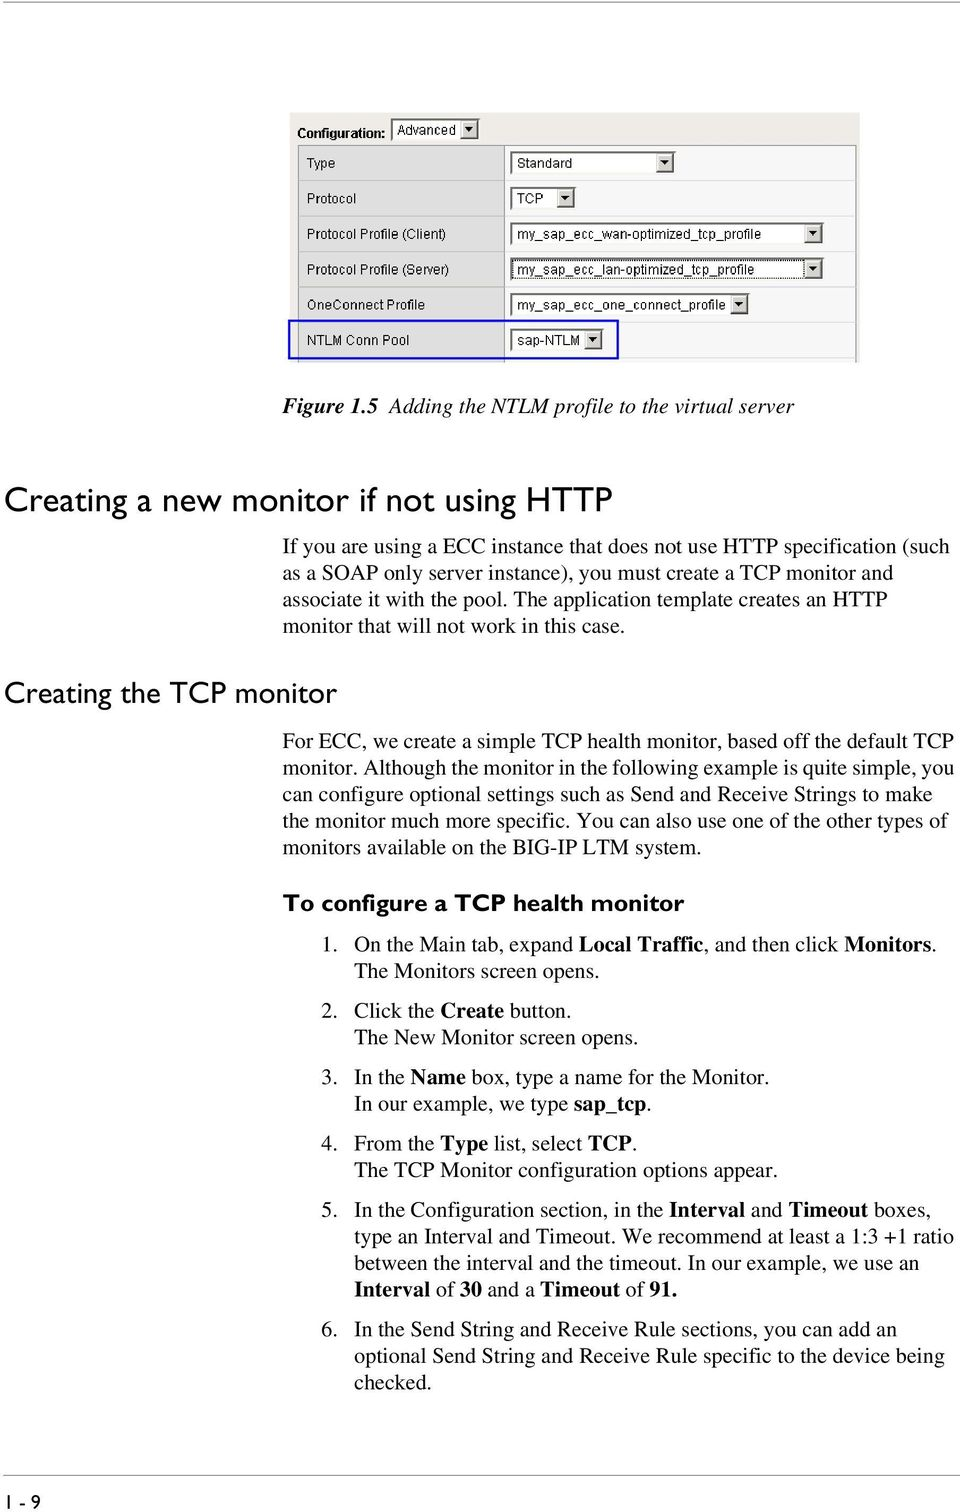 only server instance), you must create a TCP monitor and associate it with the pool. The application template creates an HTTP monitor that will not work in this case.